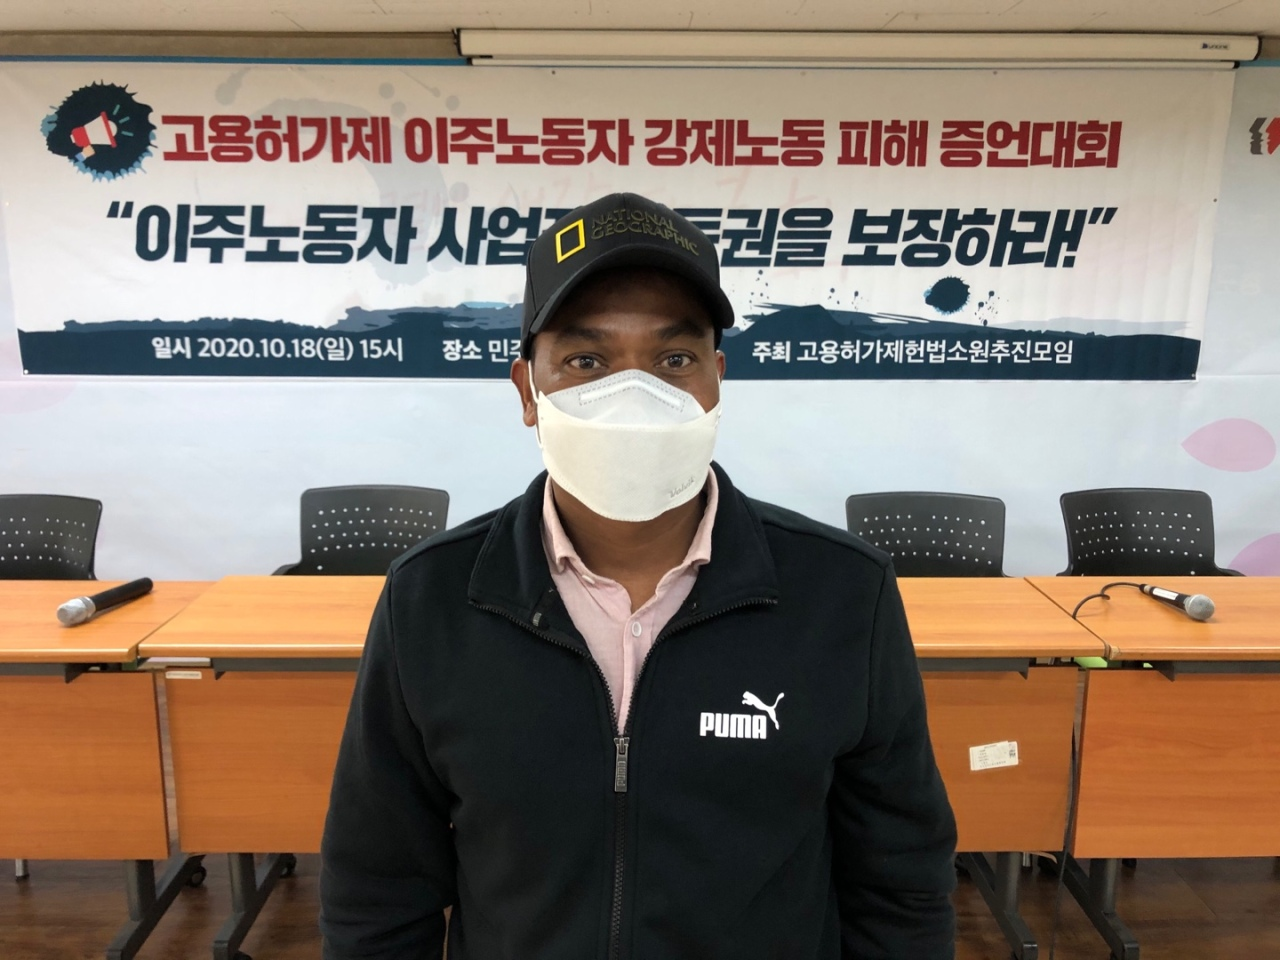 Shiva Tharu, a 40-year-old man from Nepal, poses for a picture after an interview with The Korea Herald, Sunday. (Ock Hyun-ju/The Korea Herald)